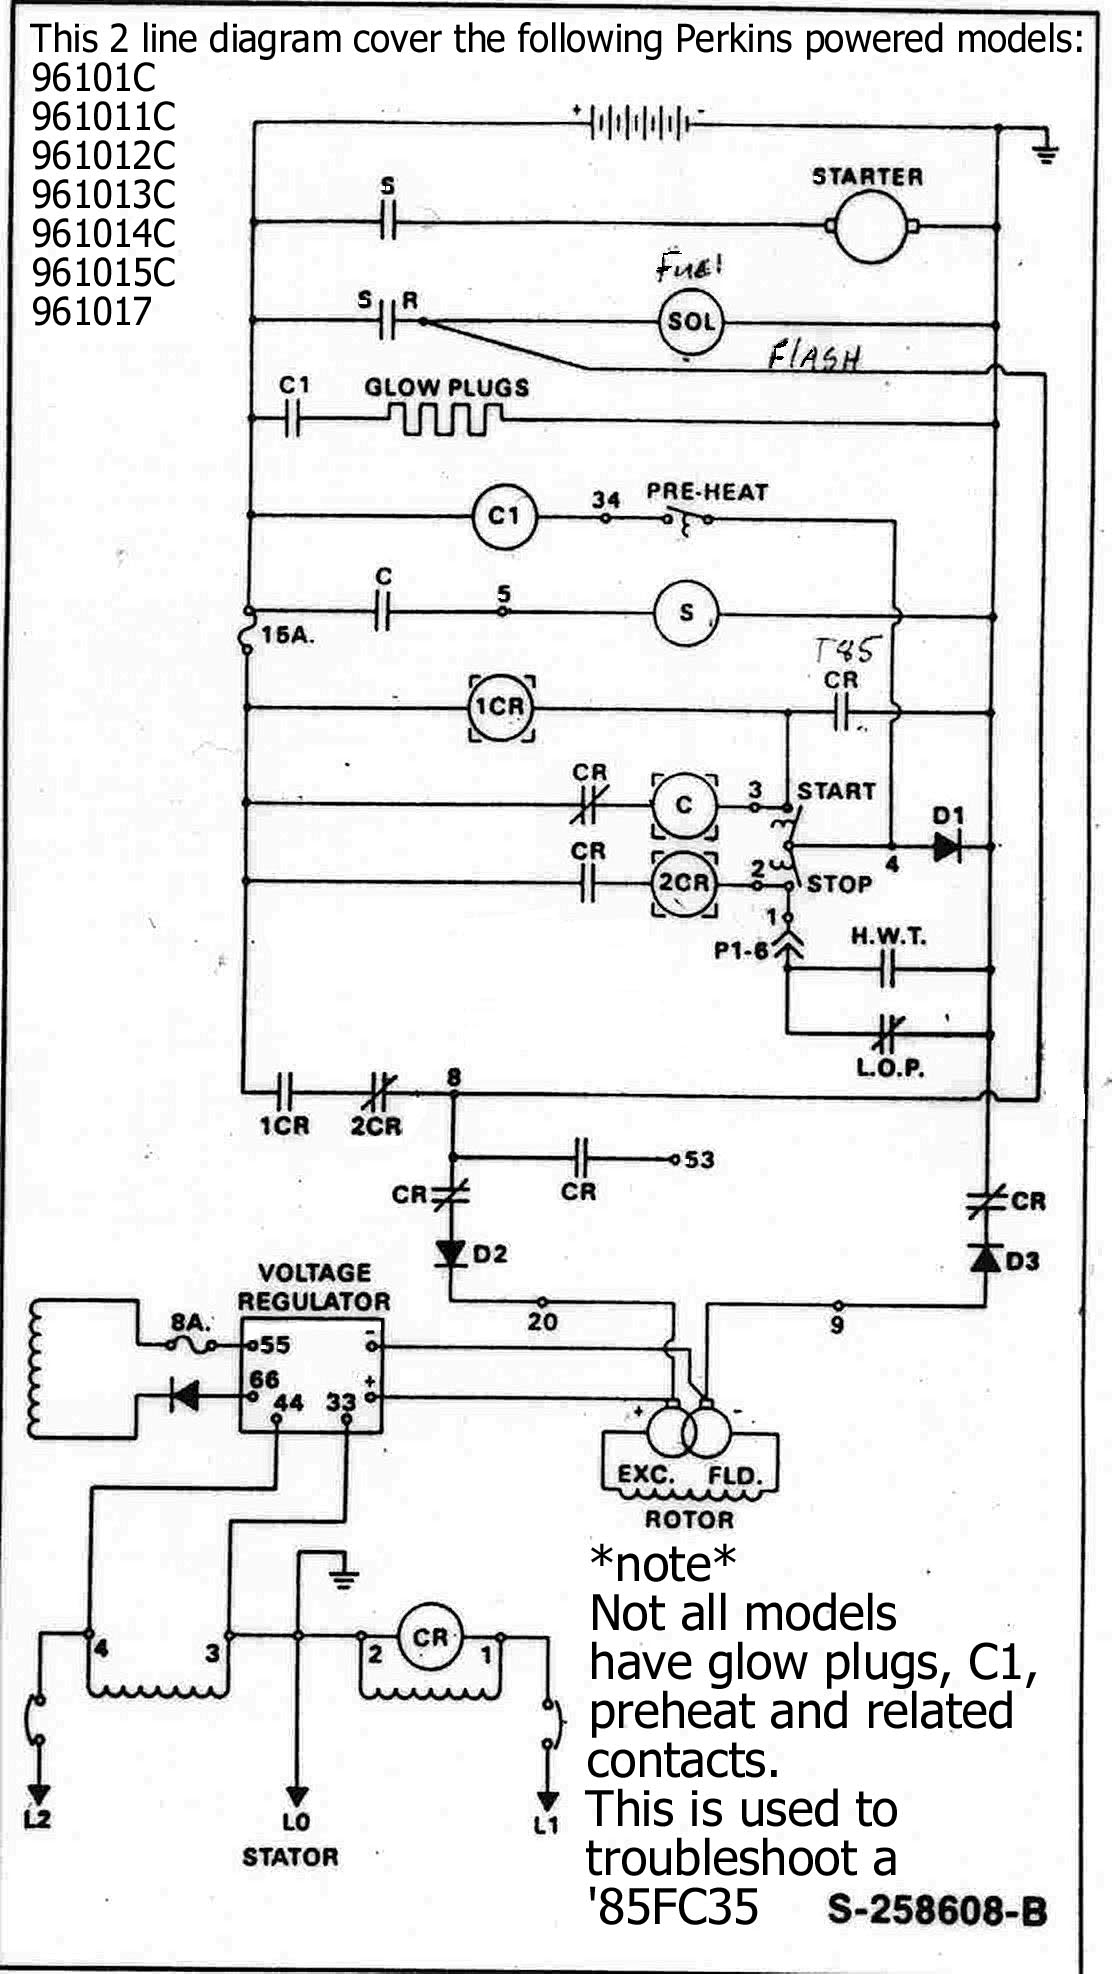 John Deere L118 Parts Manual also Blower Housing Flywheel And Ignition Assembly Briggs And Stratton 124t05 0216 B1 besides Mower Lift moreover Jd 112l Wiring Diagram furthermore John Deere 14sb Parts Diagram. on lawn mower engine diagram